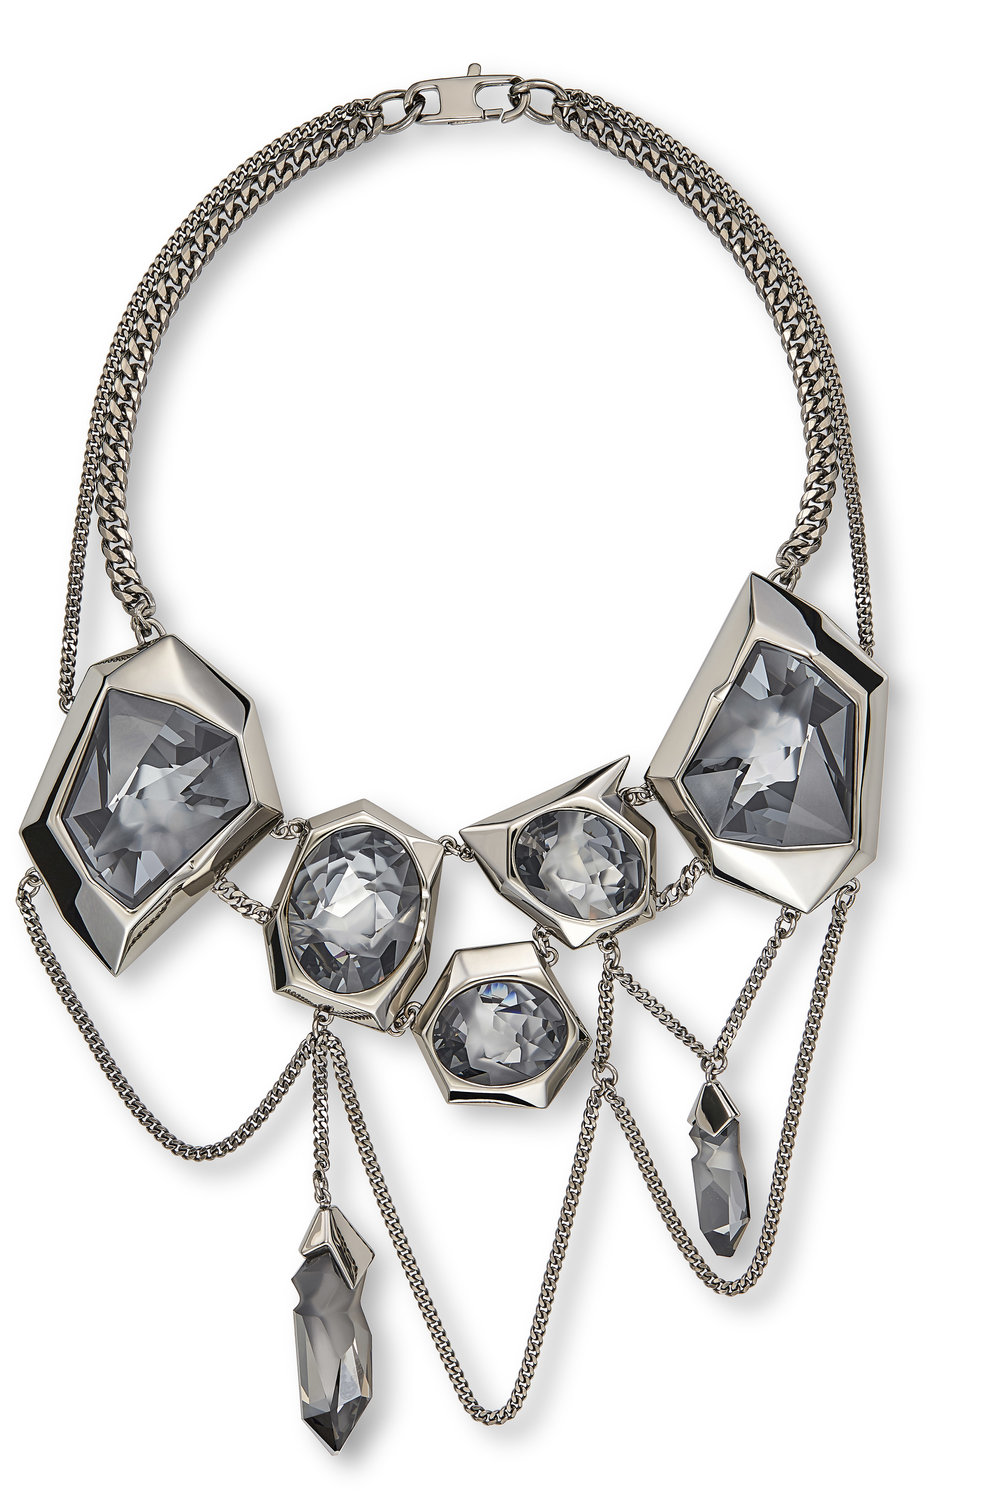 Jean Paul Gaultier Necklace.jpg